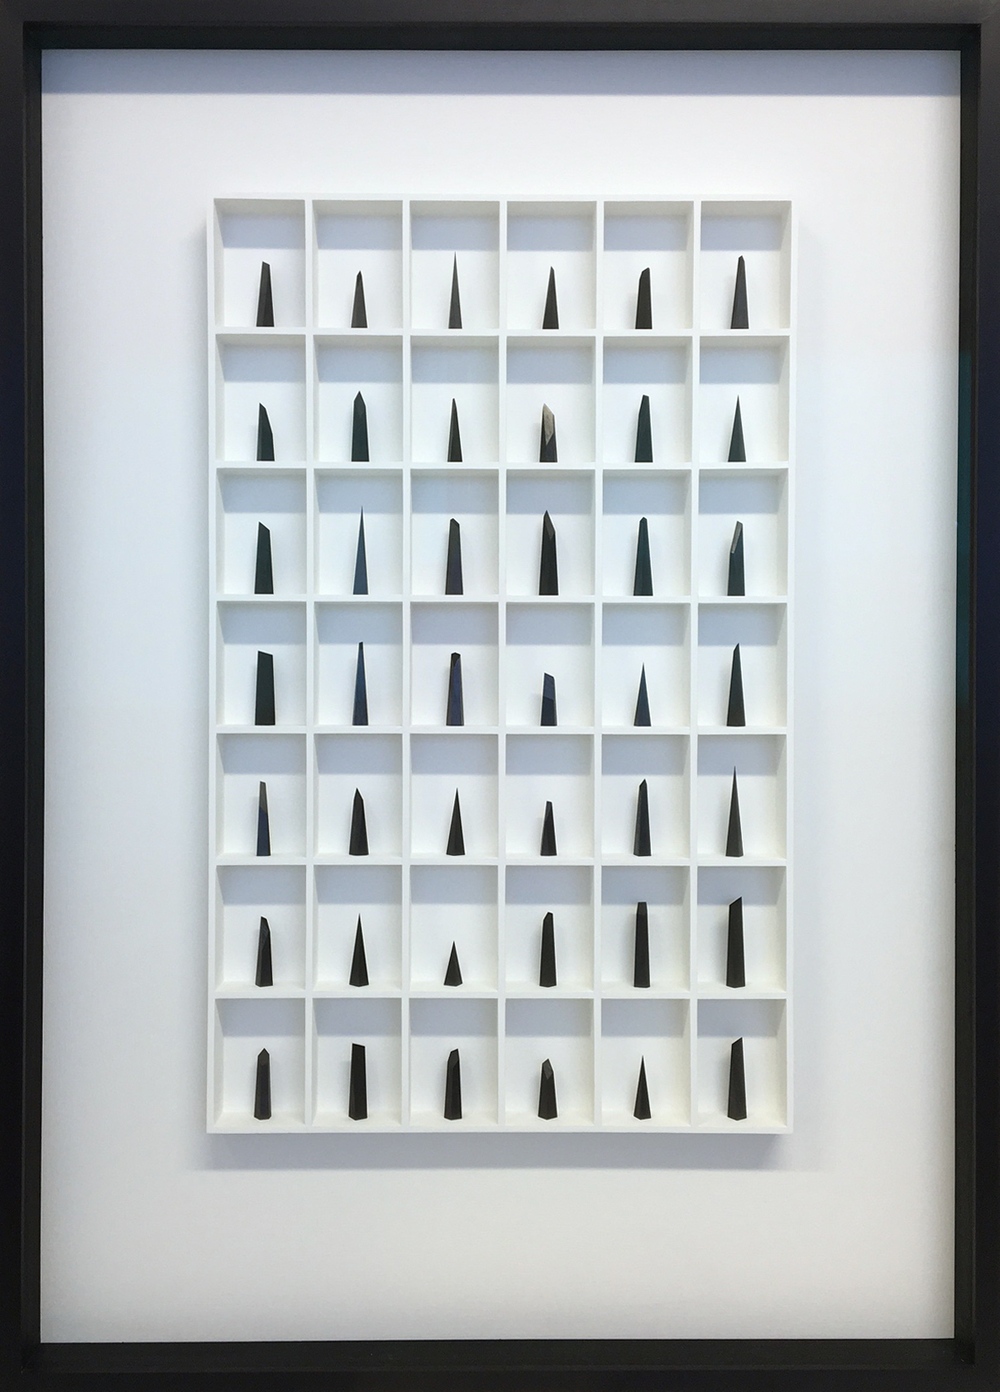 Paul Fry Hope - 42 pieces of graphite 82 x 7 x 115 cm graphite in wood construction  SOLD